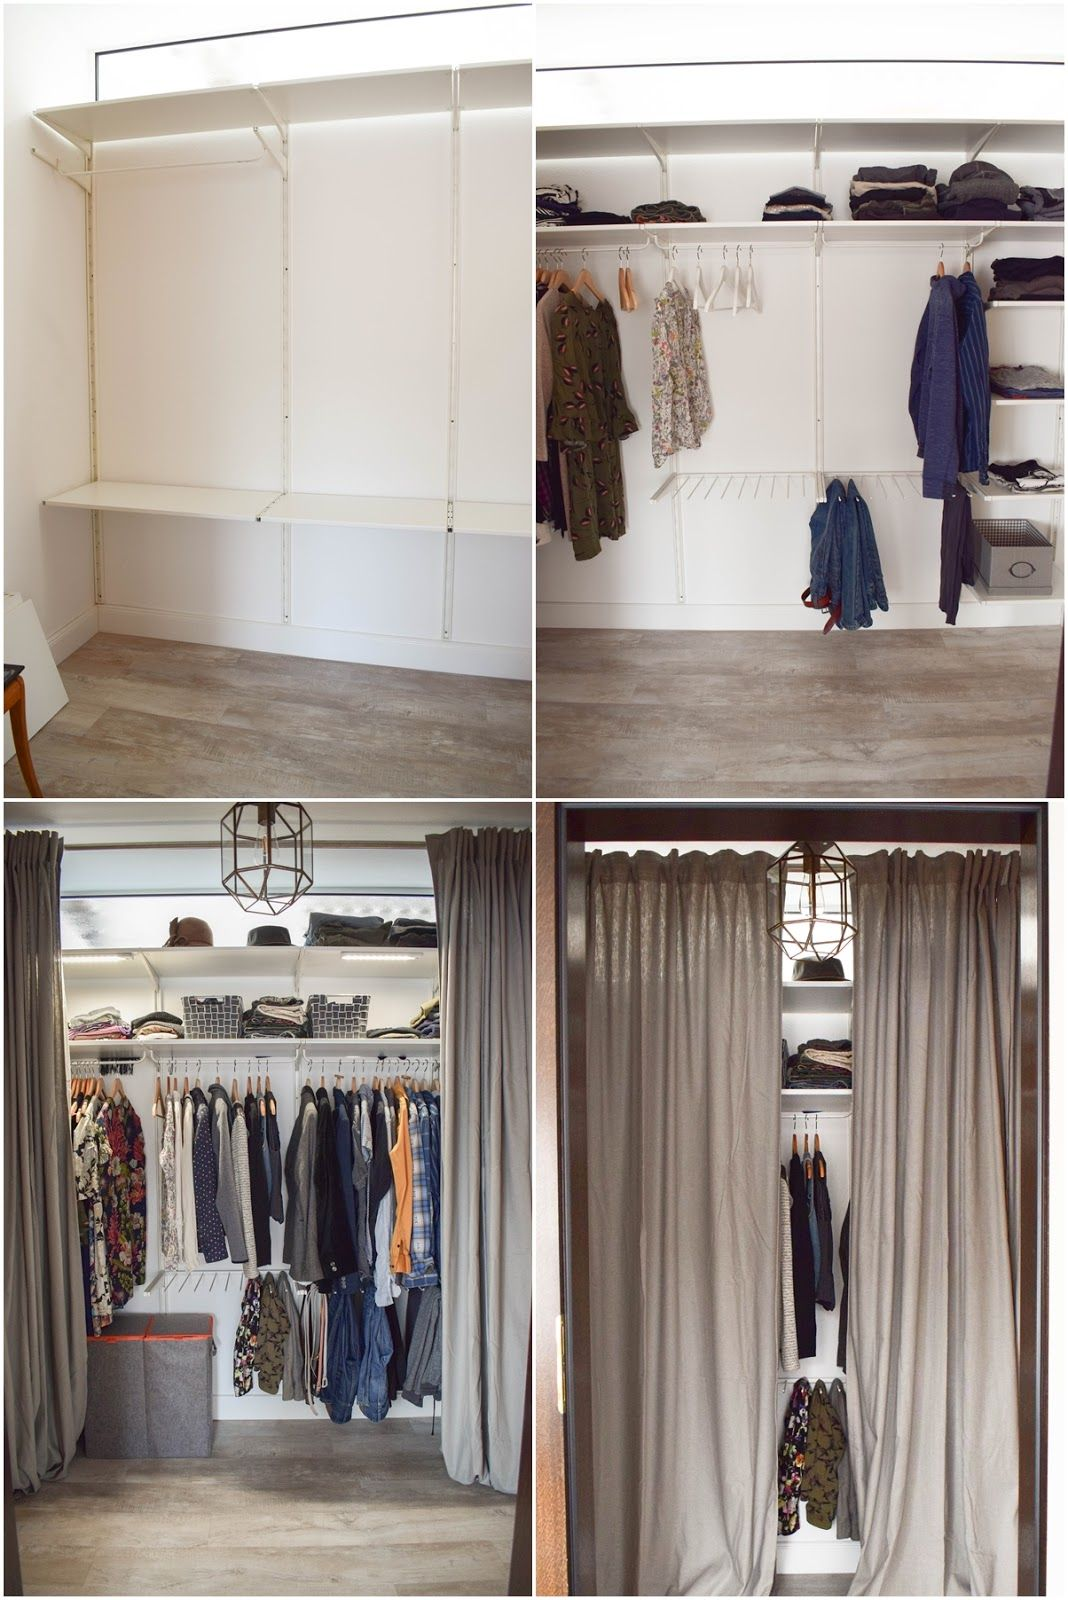 Flexible wardrobe. Before, afterwards. Practical storage for clothing tips and advice